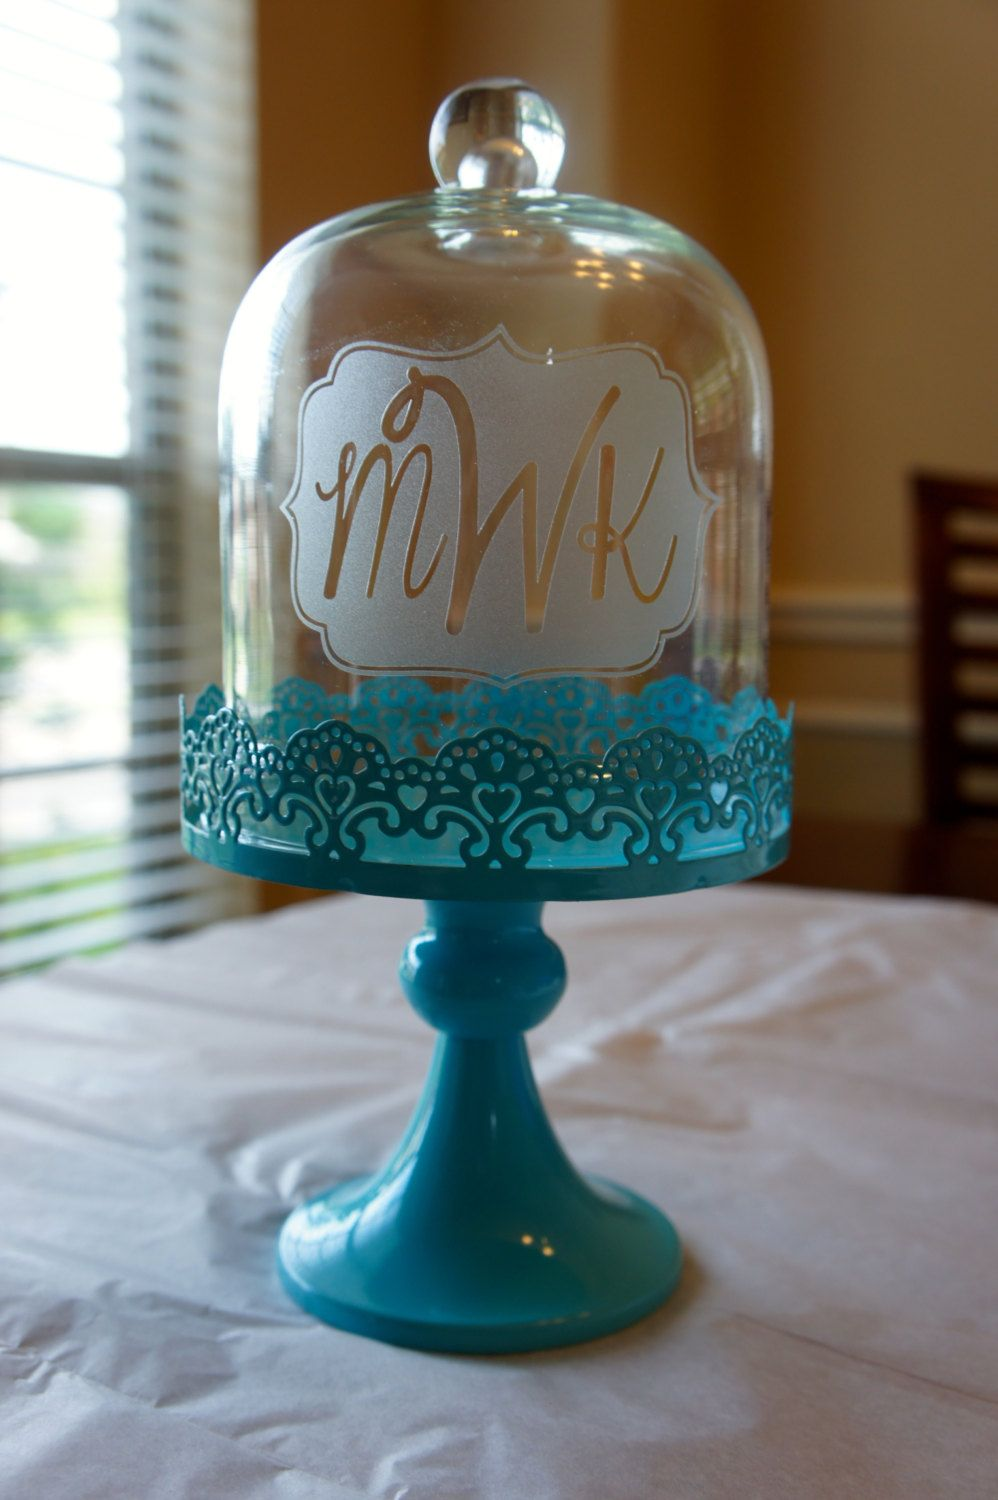 Personalized Cake Stand with Glass Dome by KirosityGifts on Etsy $29.00 & Personalized Cake Stand with Glass Dome by KirosityGifts on Etsy ...